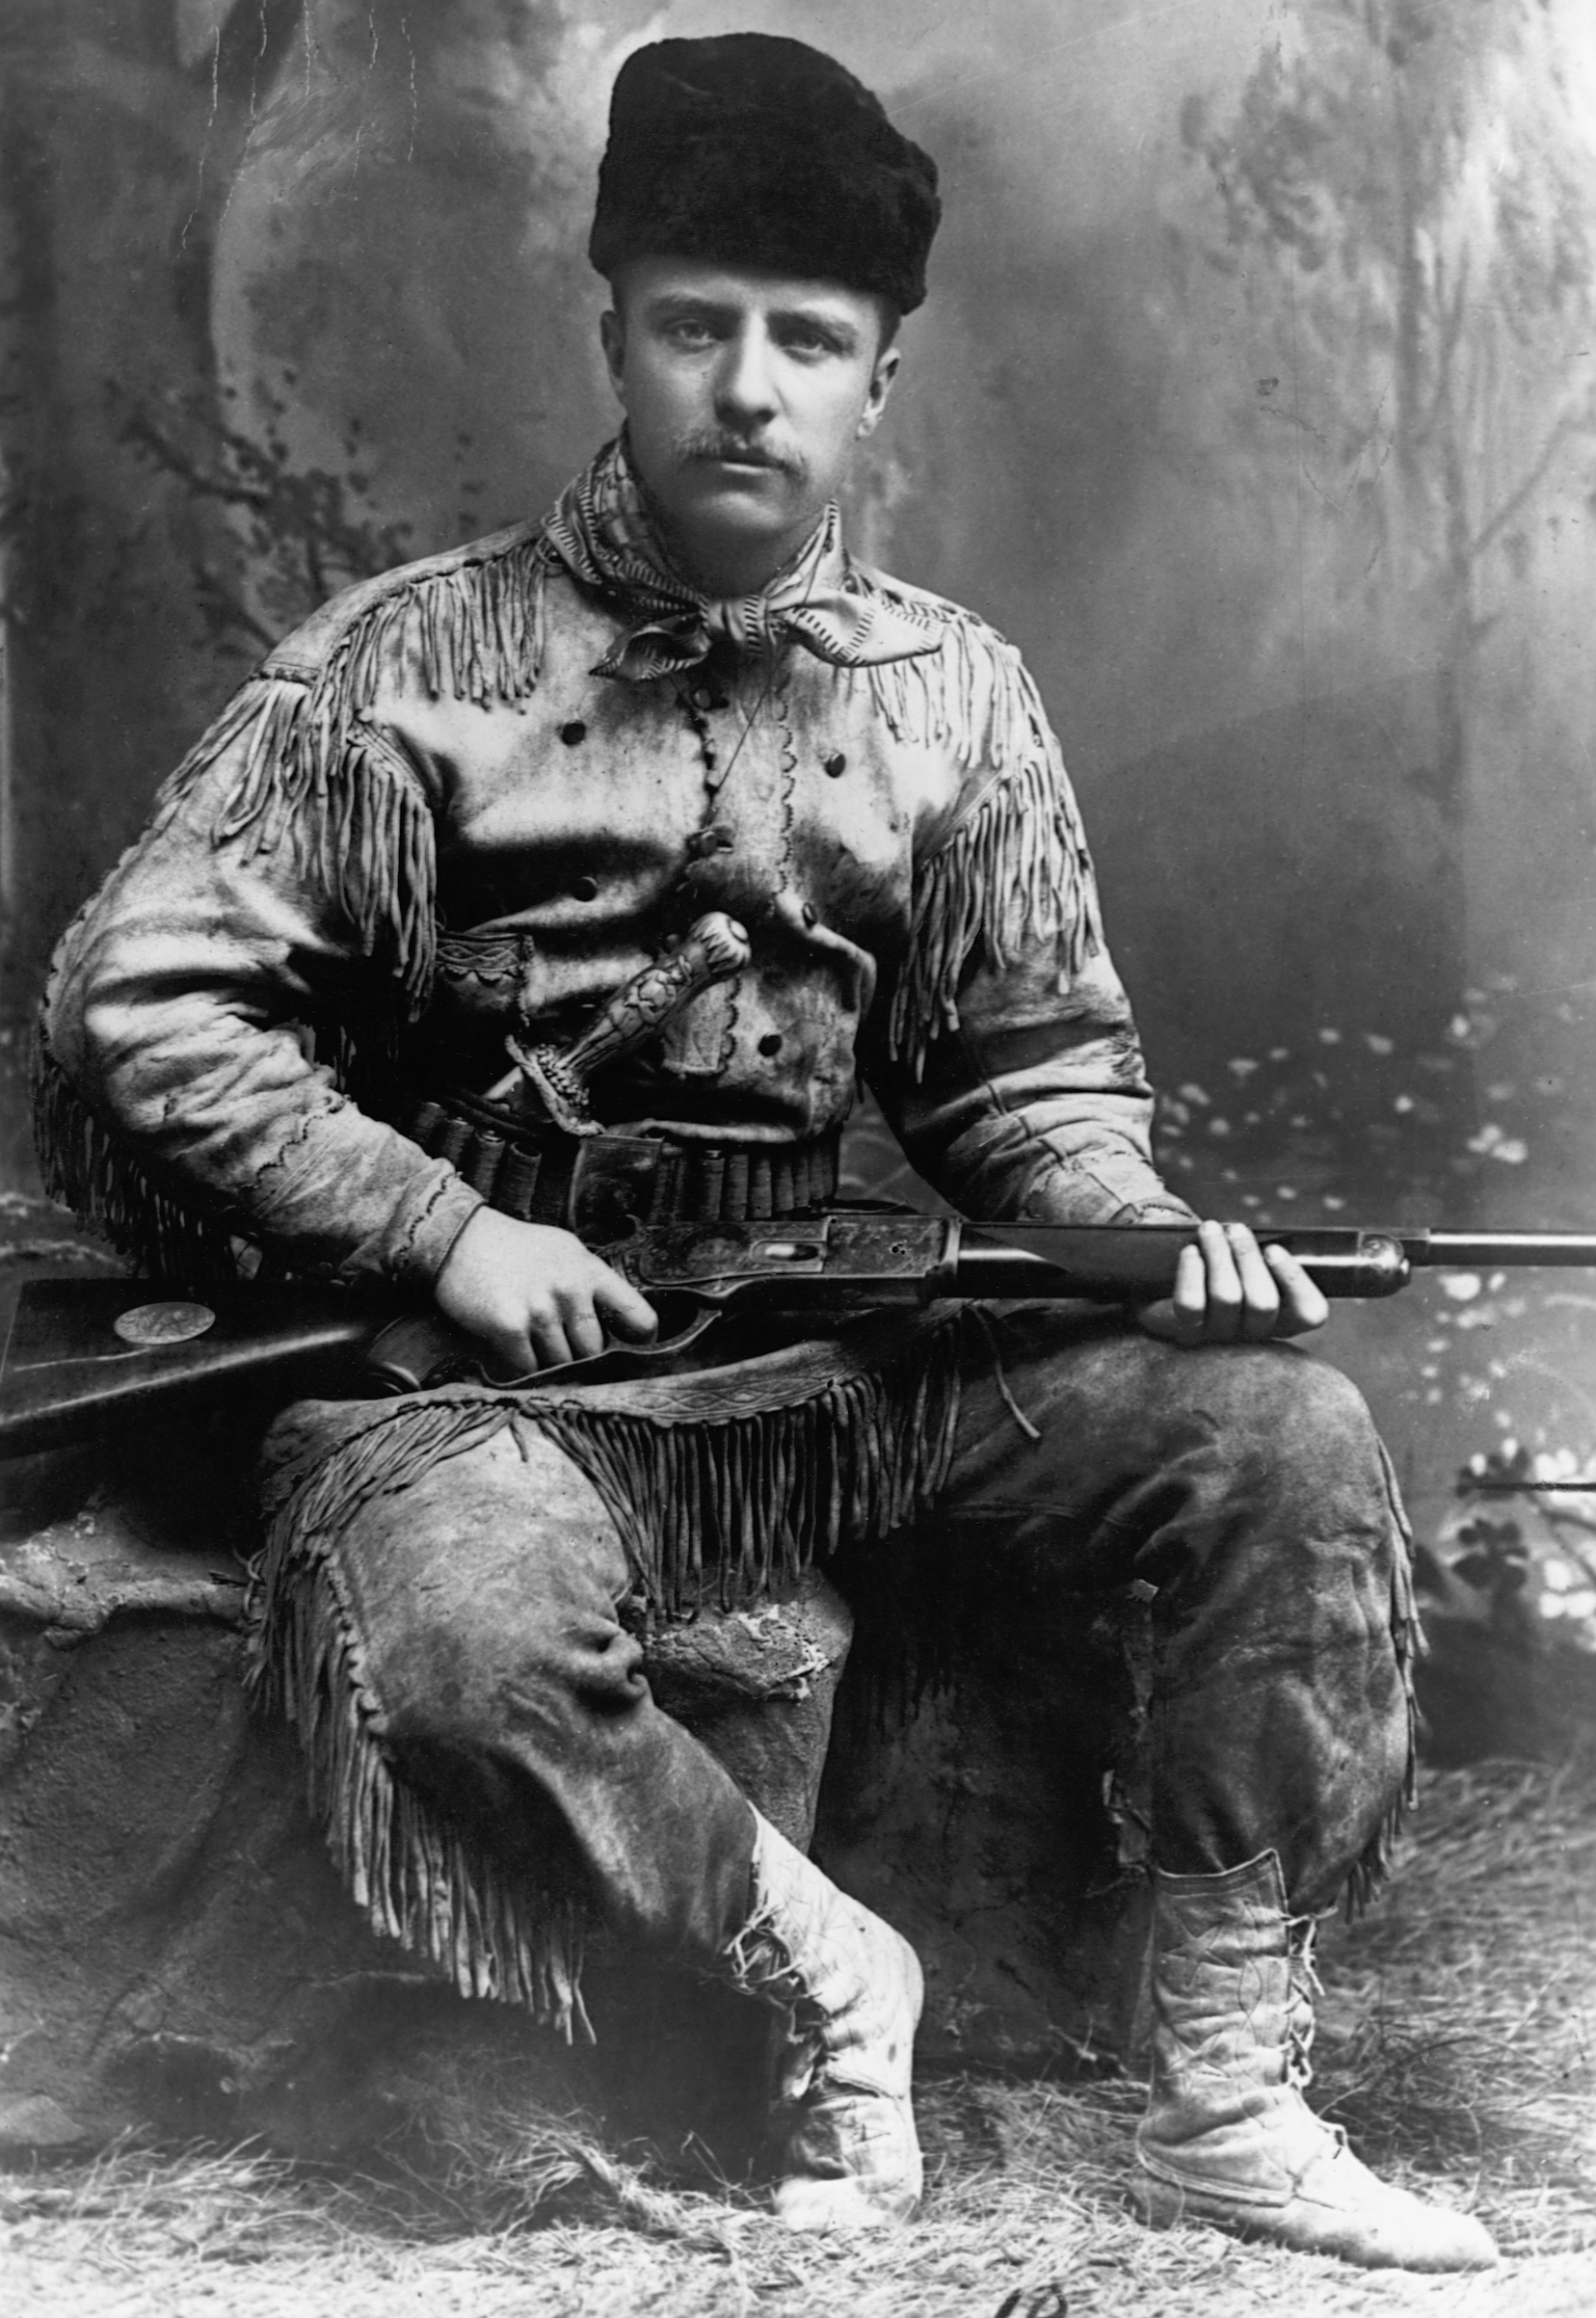 A portrait of Theodore Roosevelt (1858-1919) in buckskin, without his trademark glasses. This portrait is dated 1885, the year he retired to his ranch in the Dakota Territory, following the death of his mother and first wife.